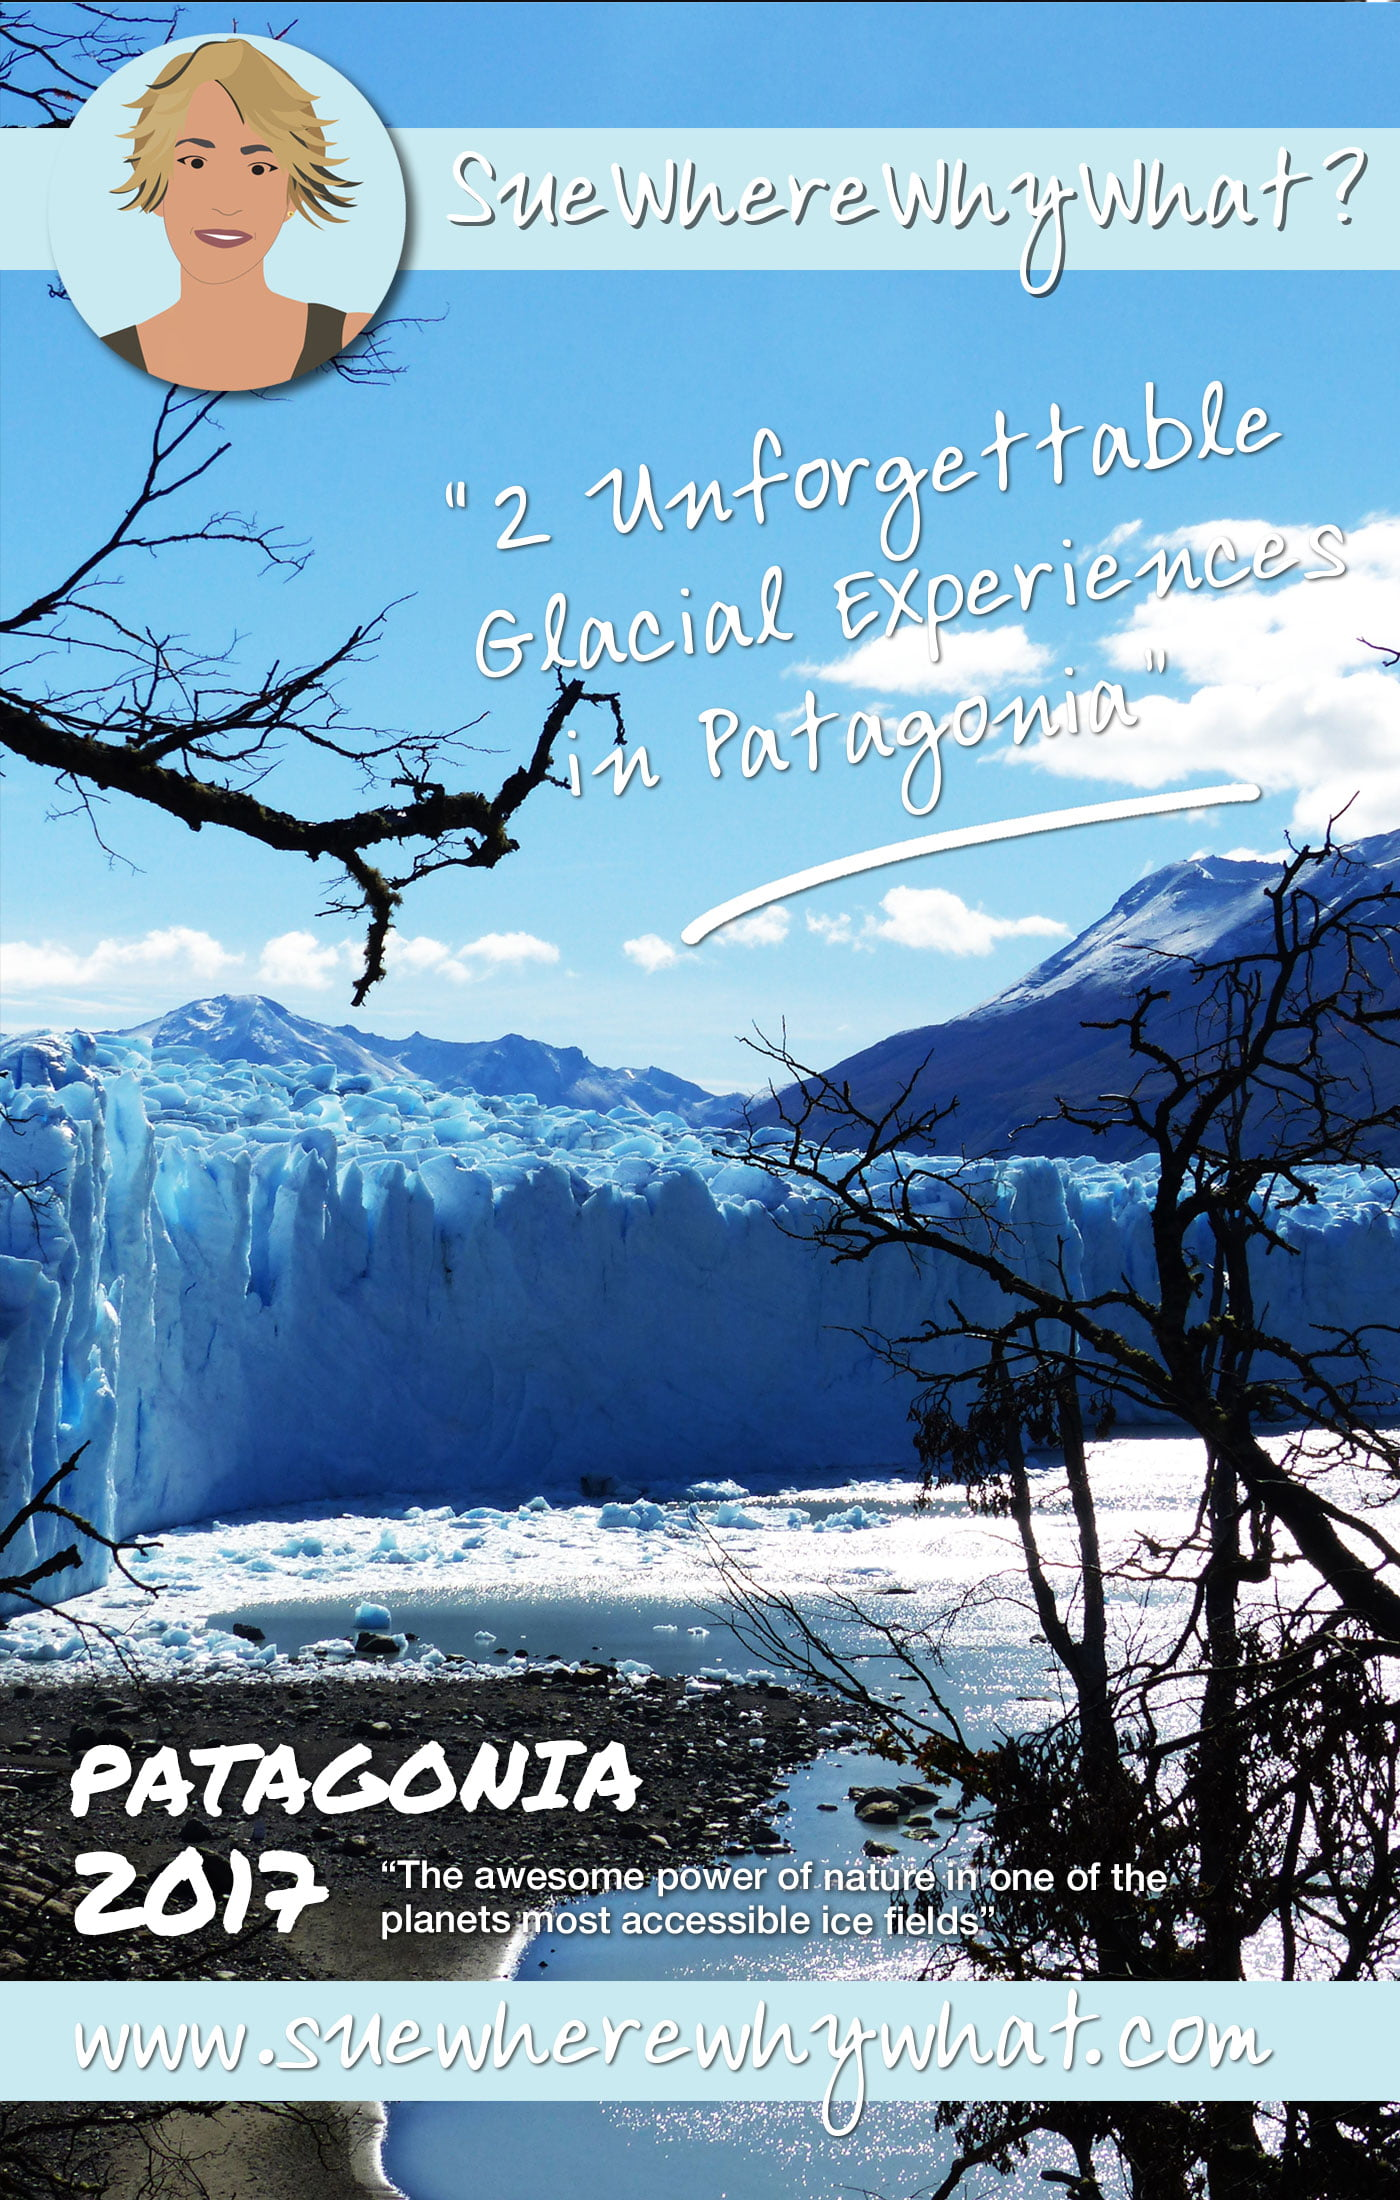 2 Unforgettable Glacial Experiences in Patagonia